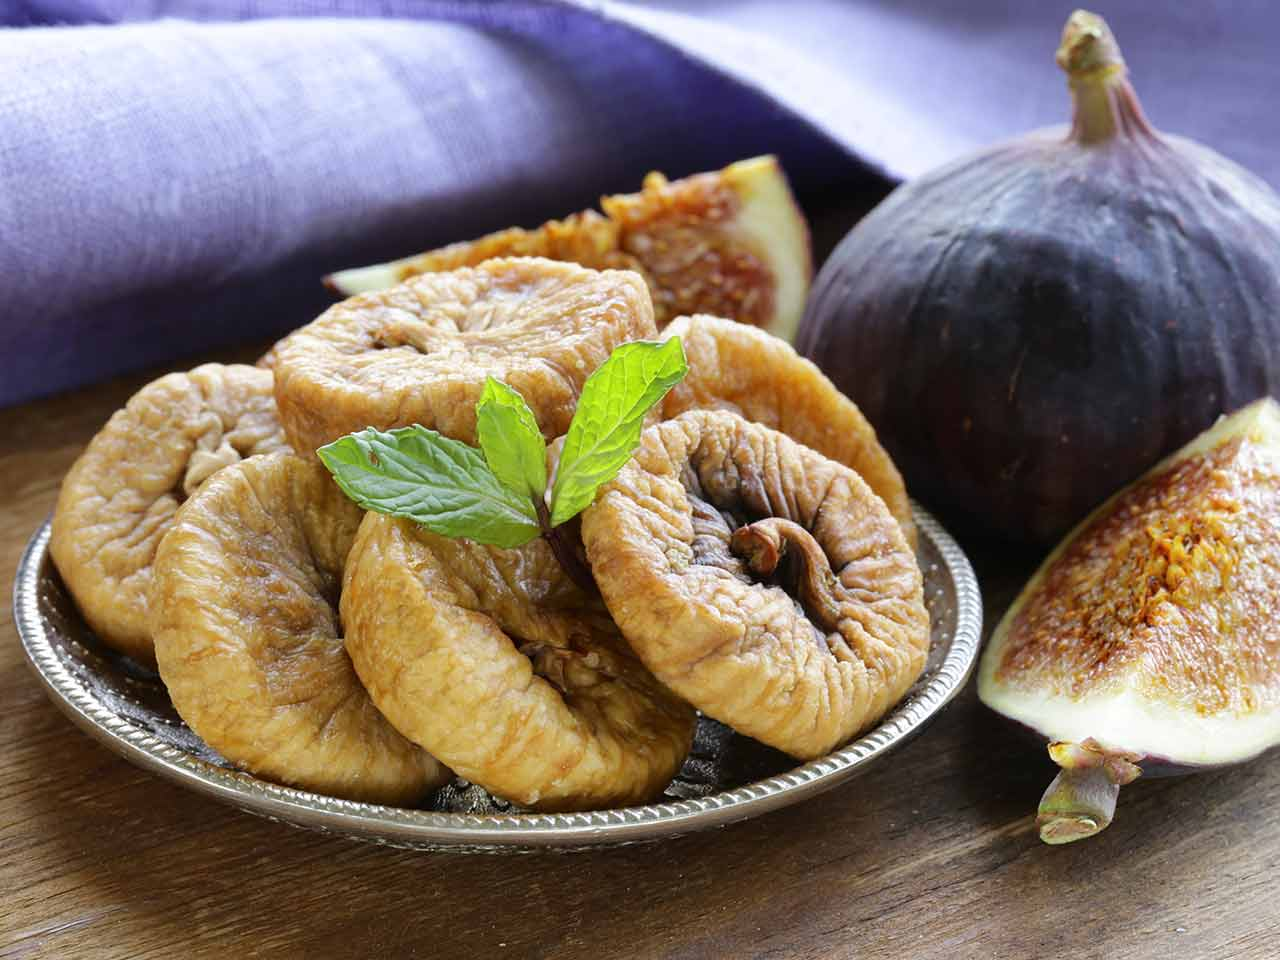 A plate of dried figs and a fresh fig